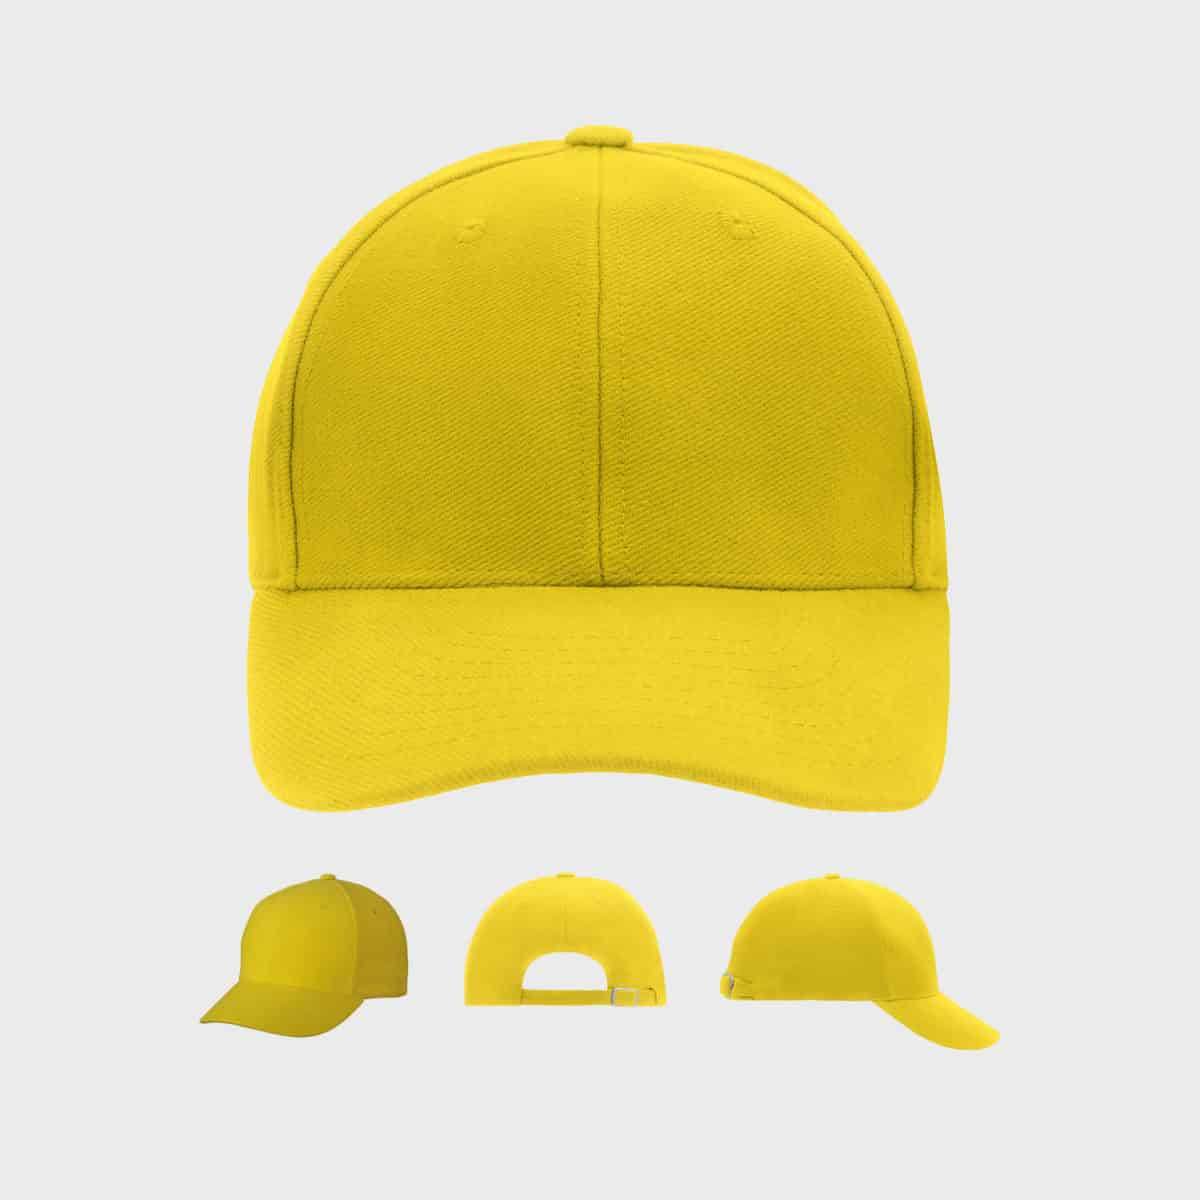 baseball-cap-6-panel-sun-yellow-kaufen-besticken_stickmanufaktur